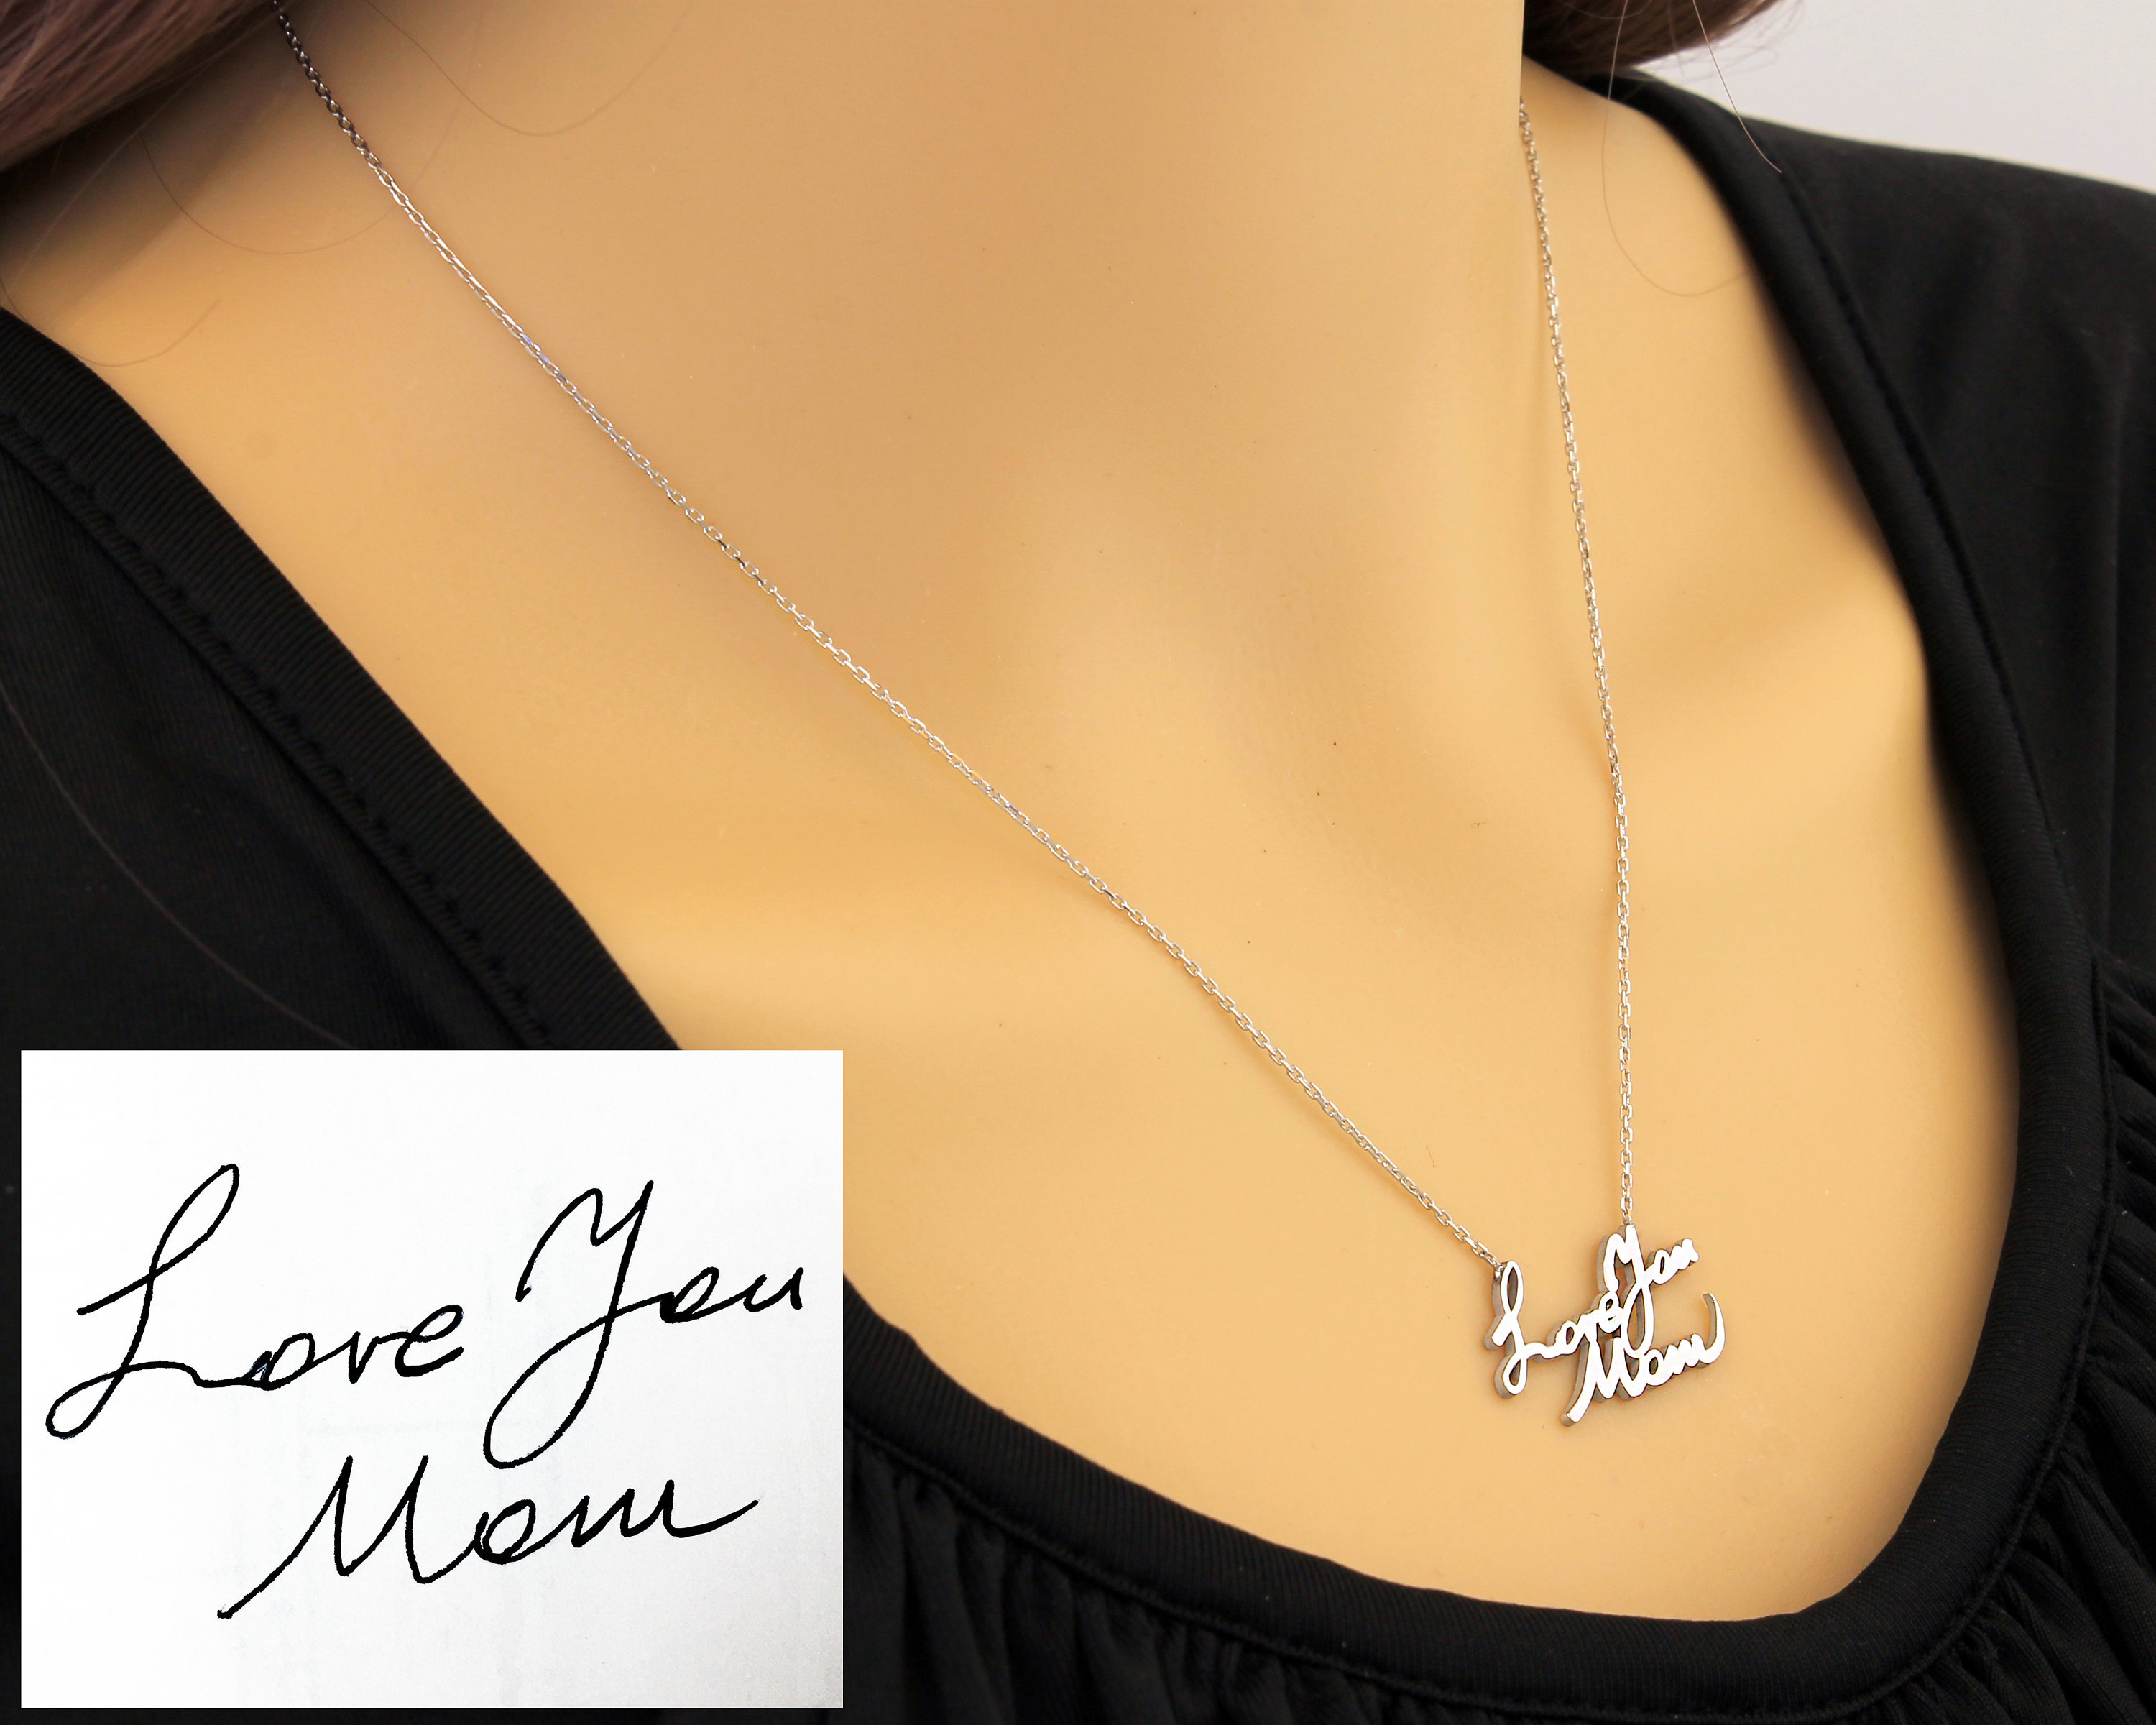 ashes with jewelry products and cremation photo personalized memorial necklace charm urn keepsake